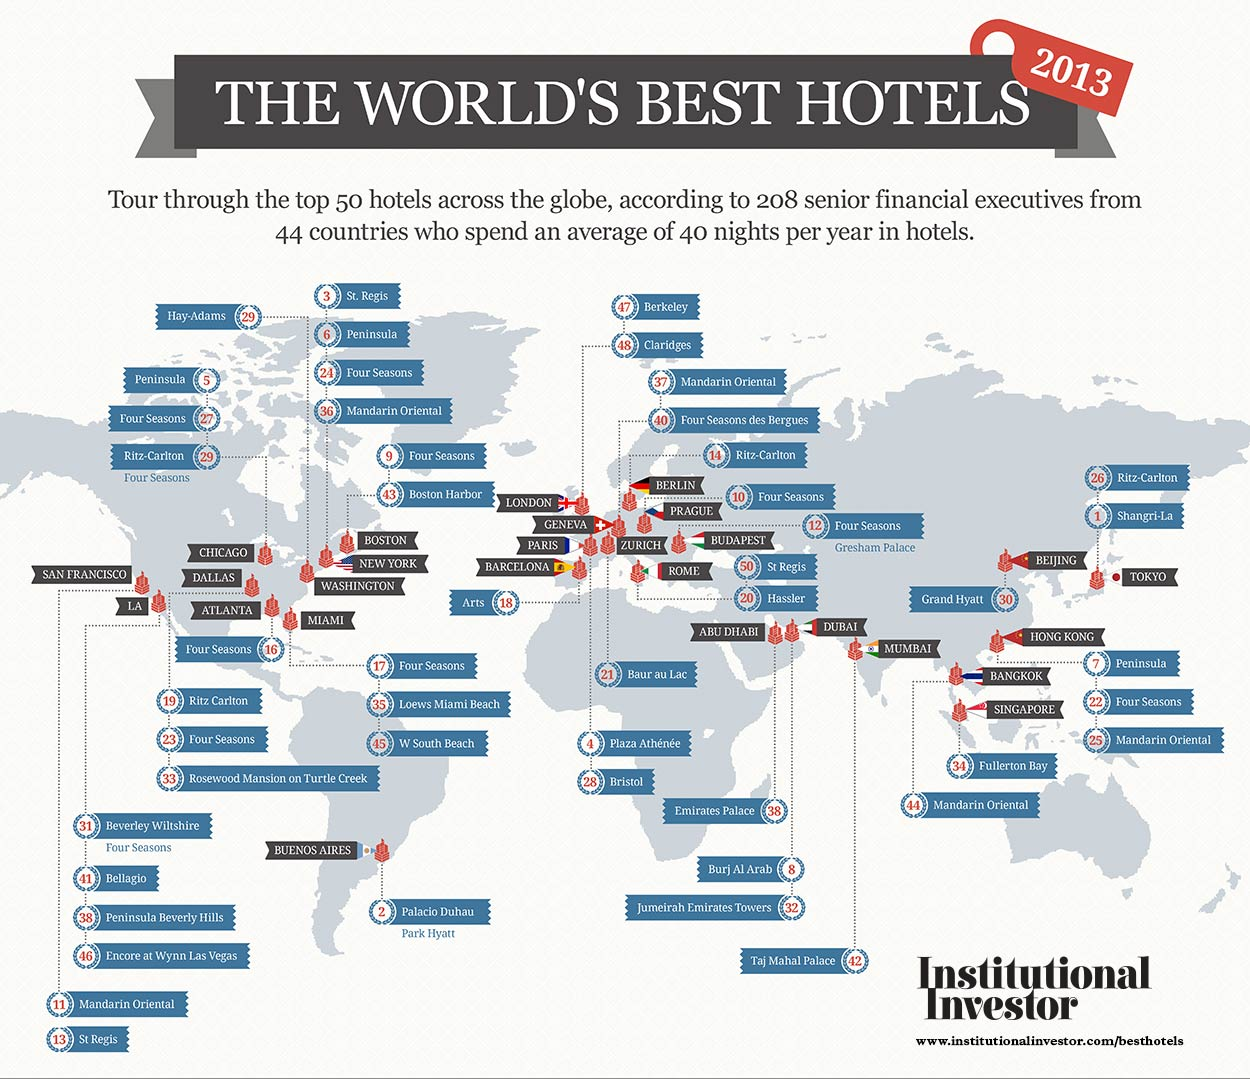 hotels in the world: